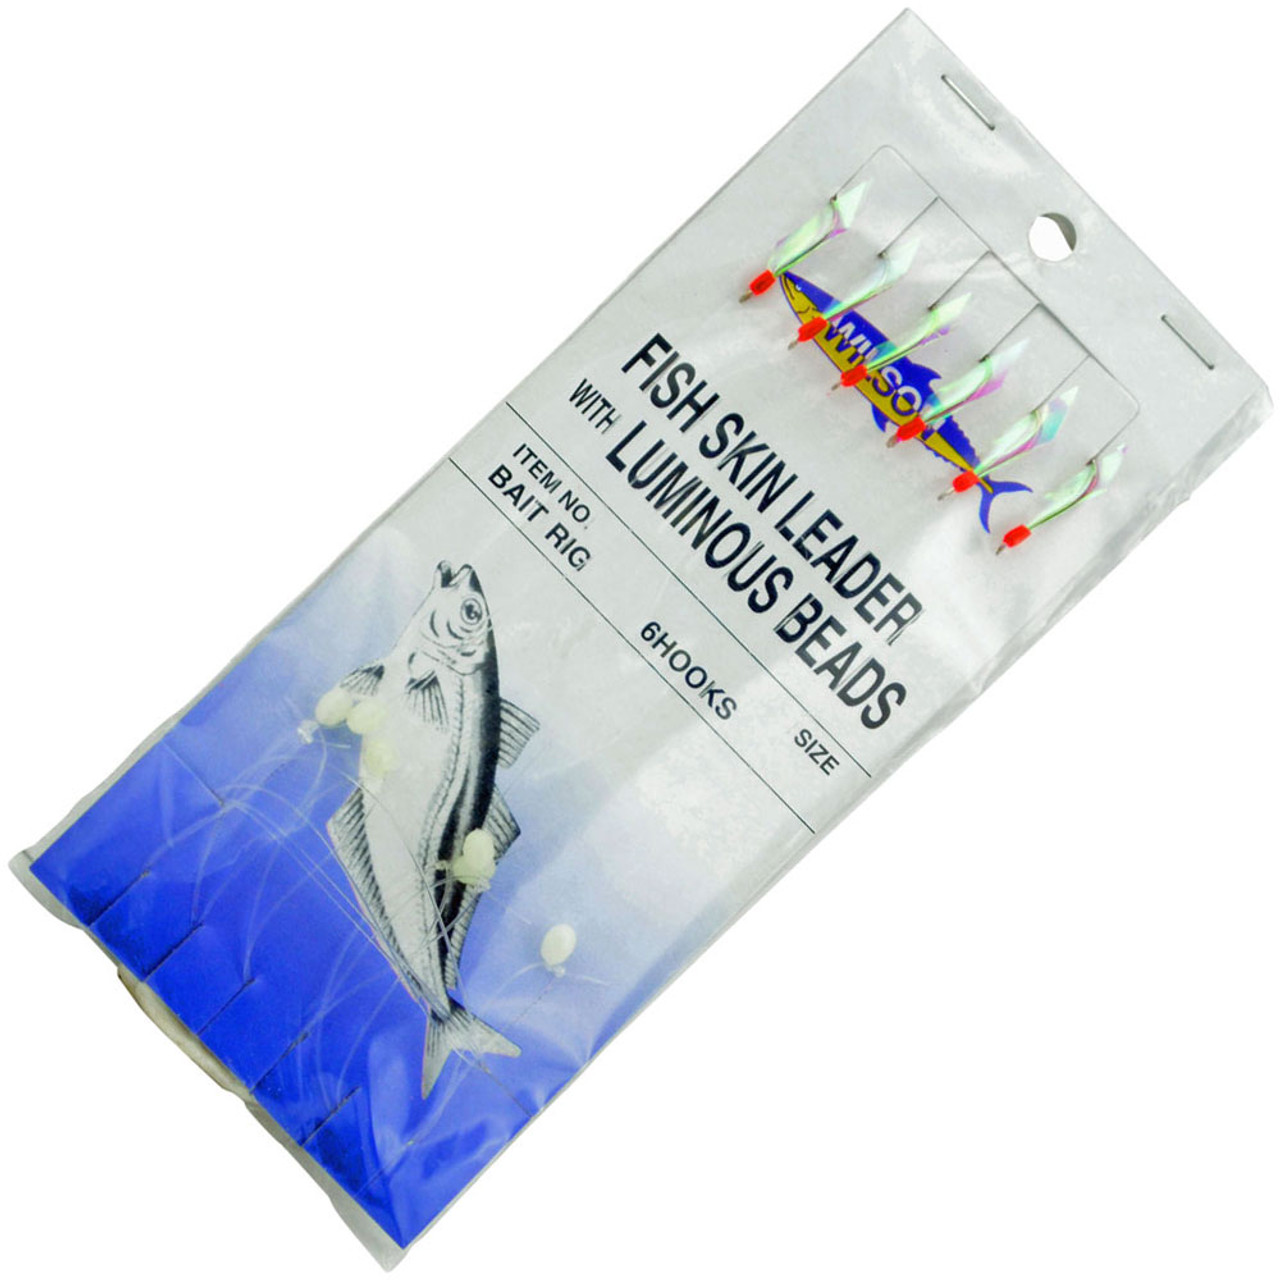 Mustad Flash-A-Boo Mackerel /& Bait Traces Rigs available in 3 hook sizes